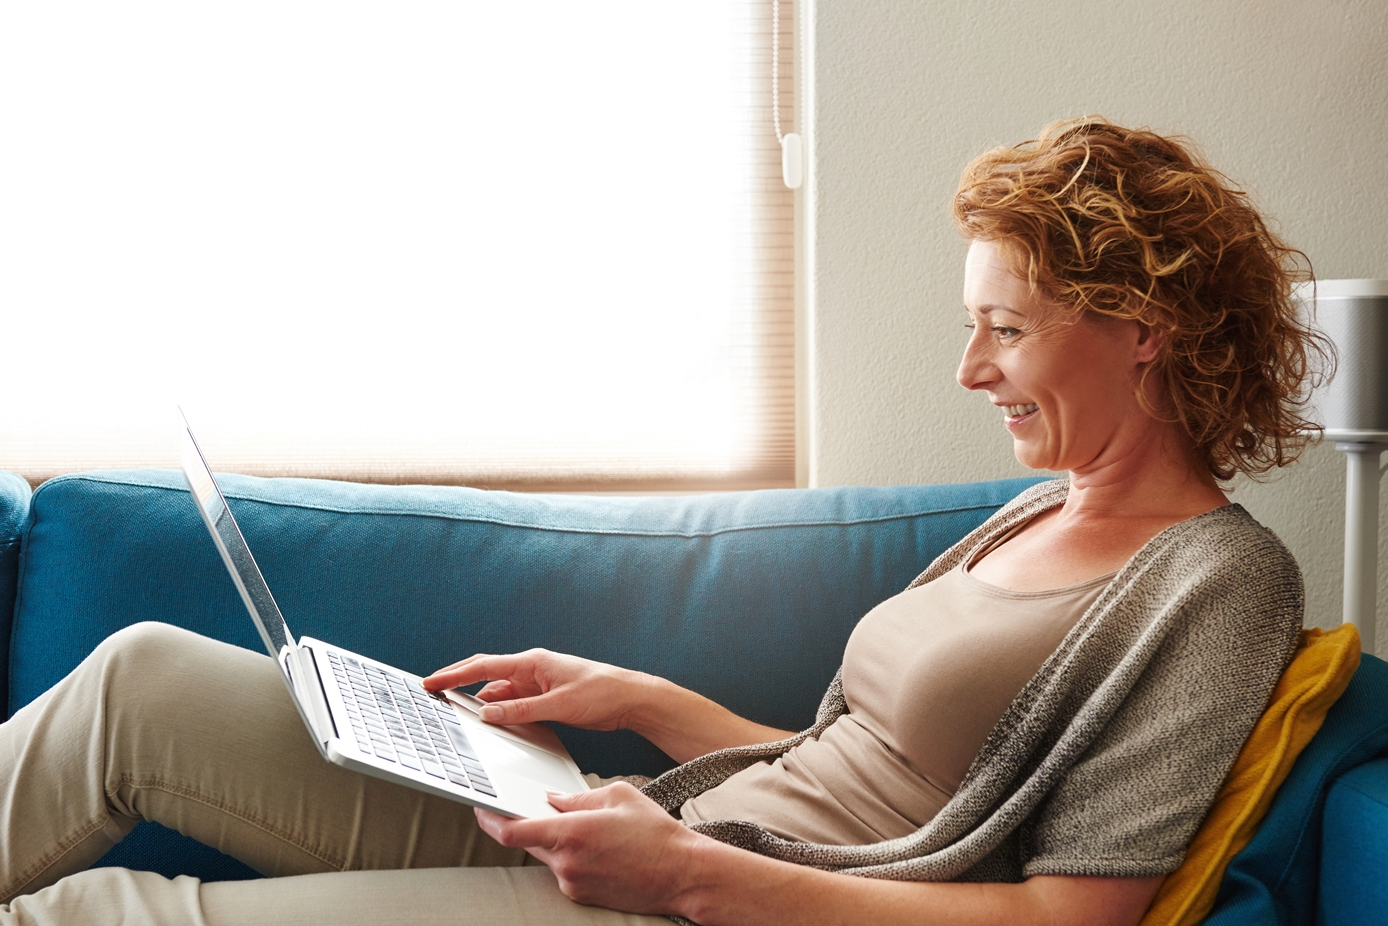 Woman lying on sofa with laptop smiling